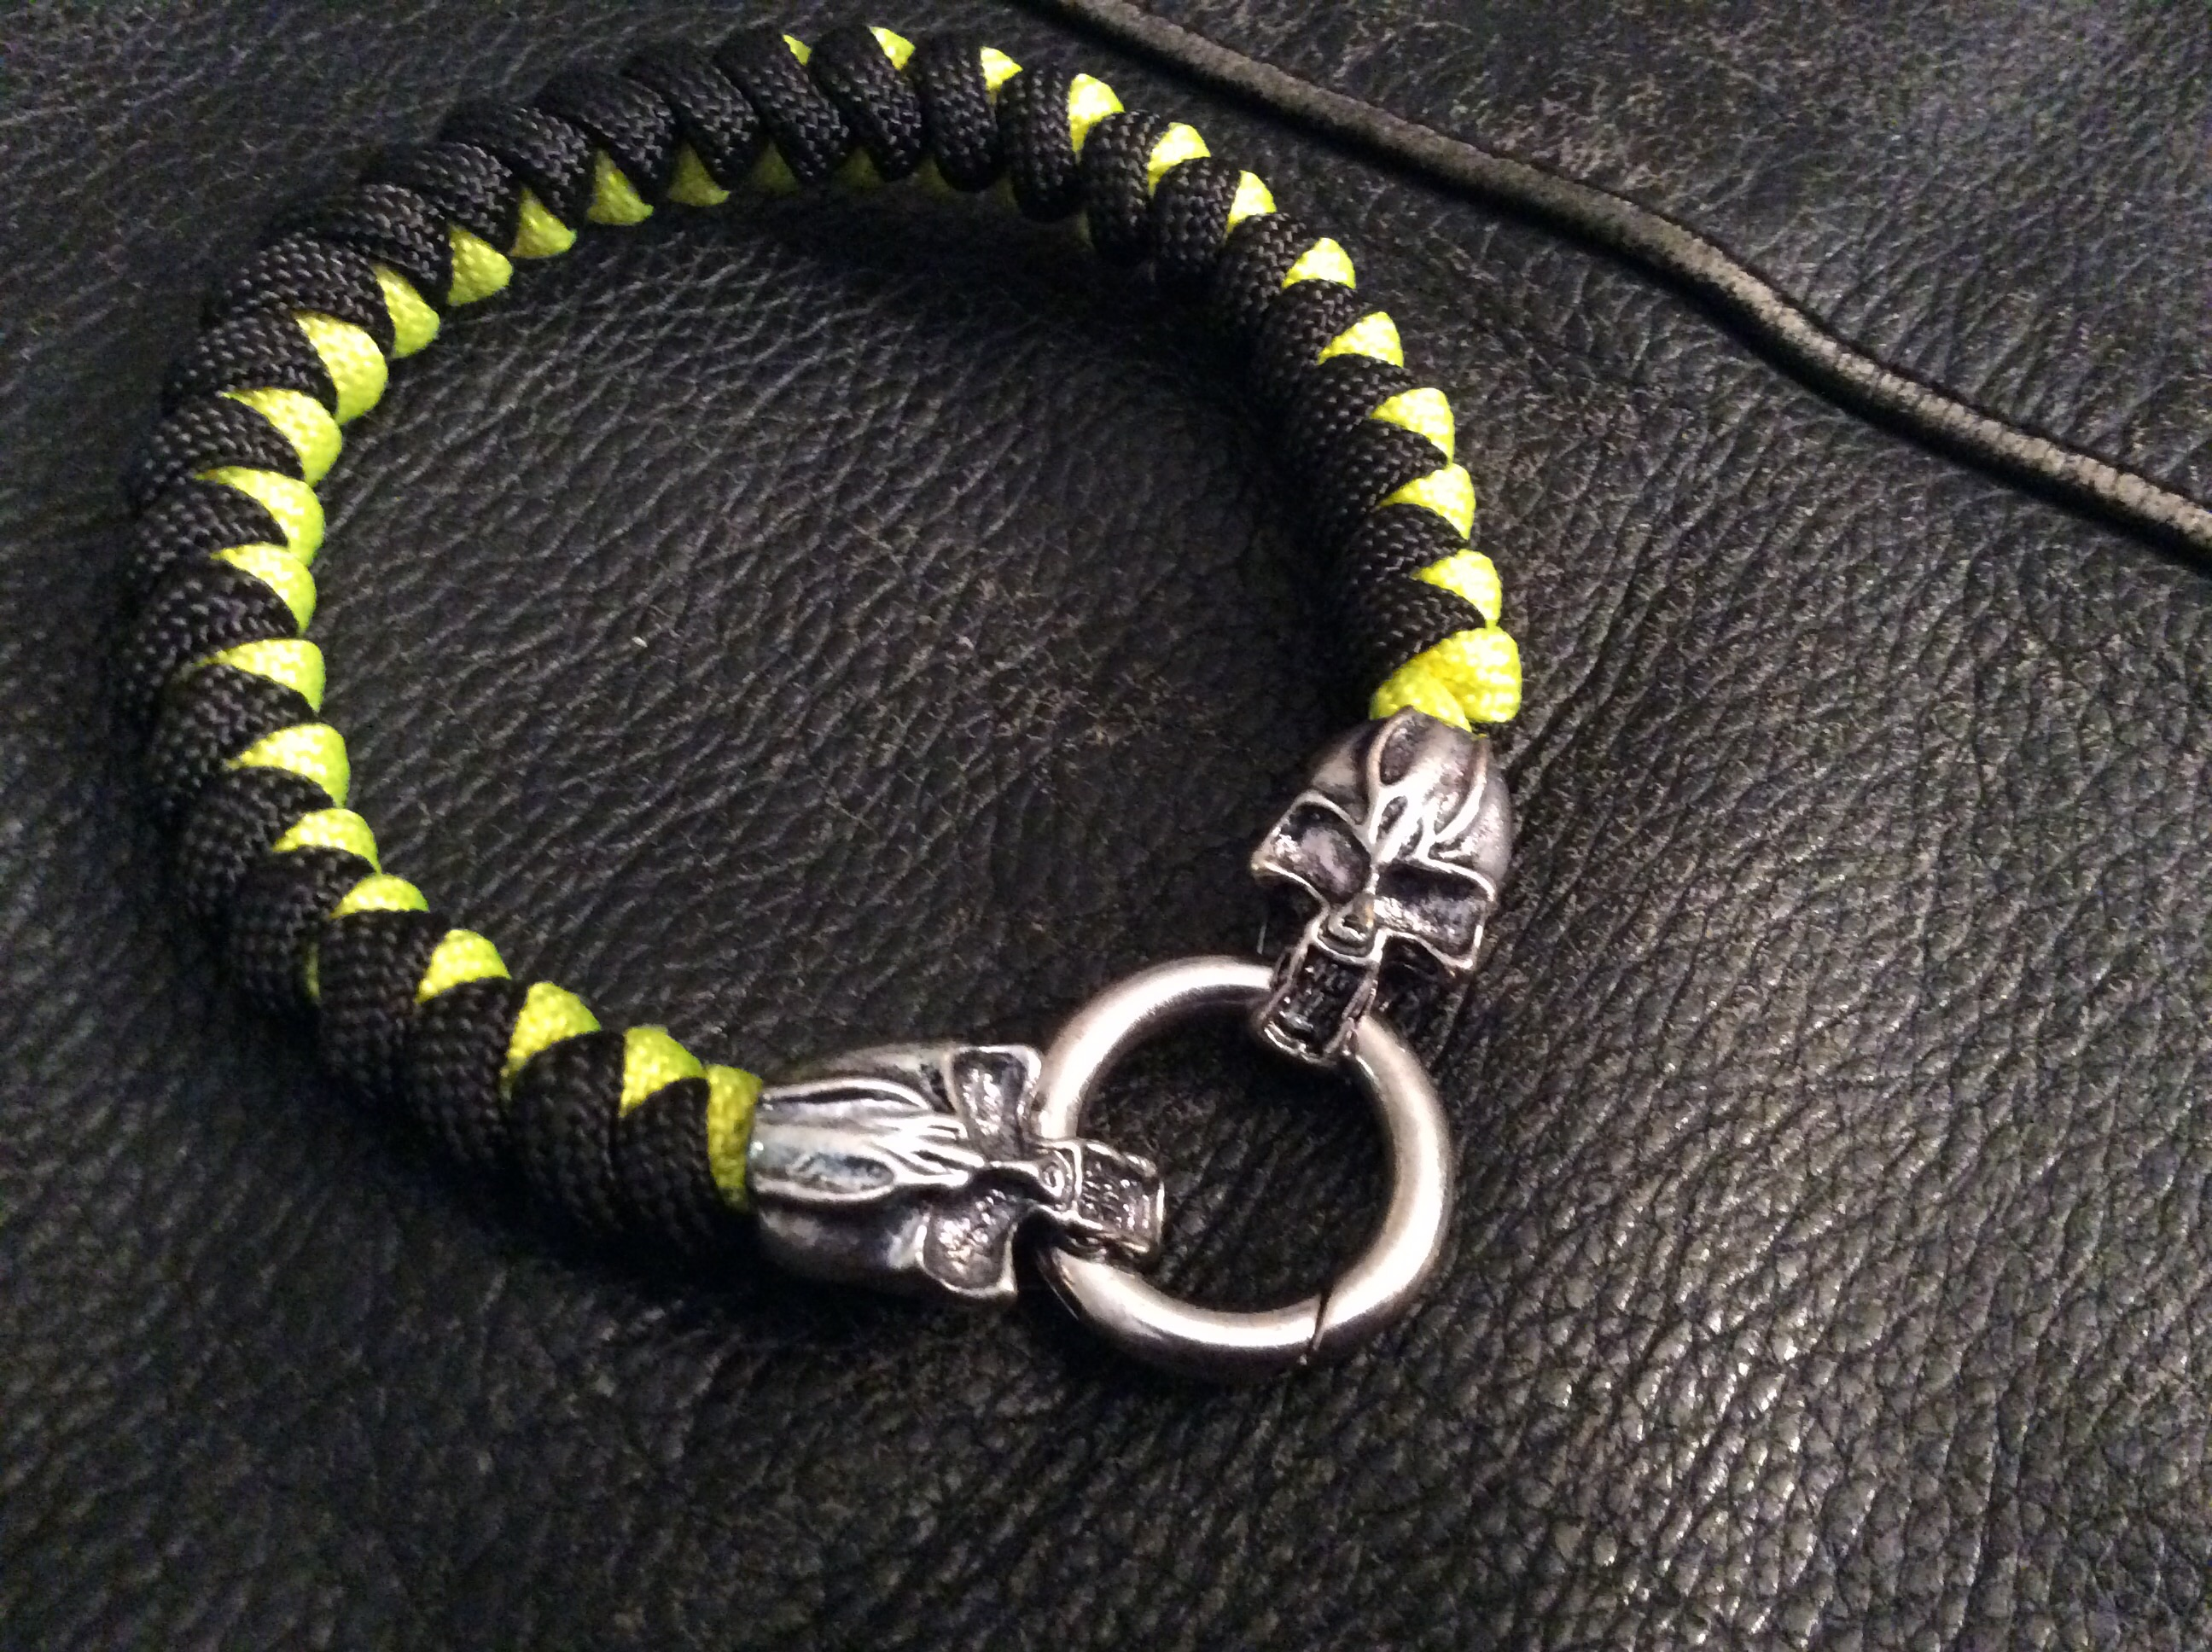 Black an Yellow Paracord Bracelet with Skull Clasp